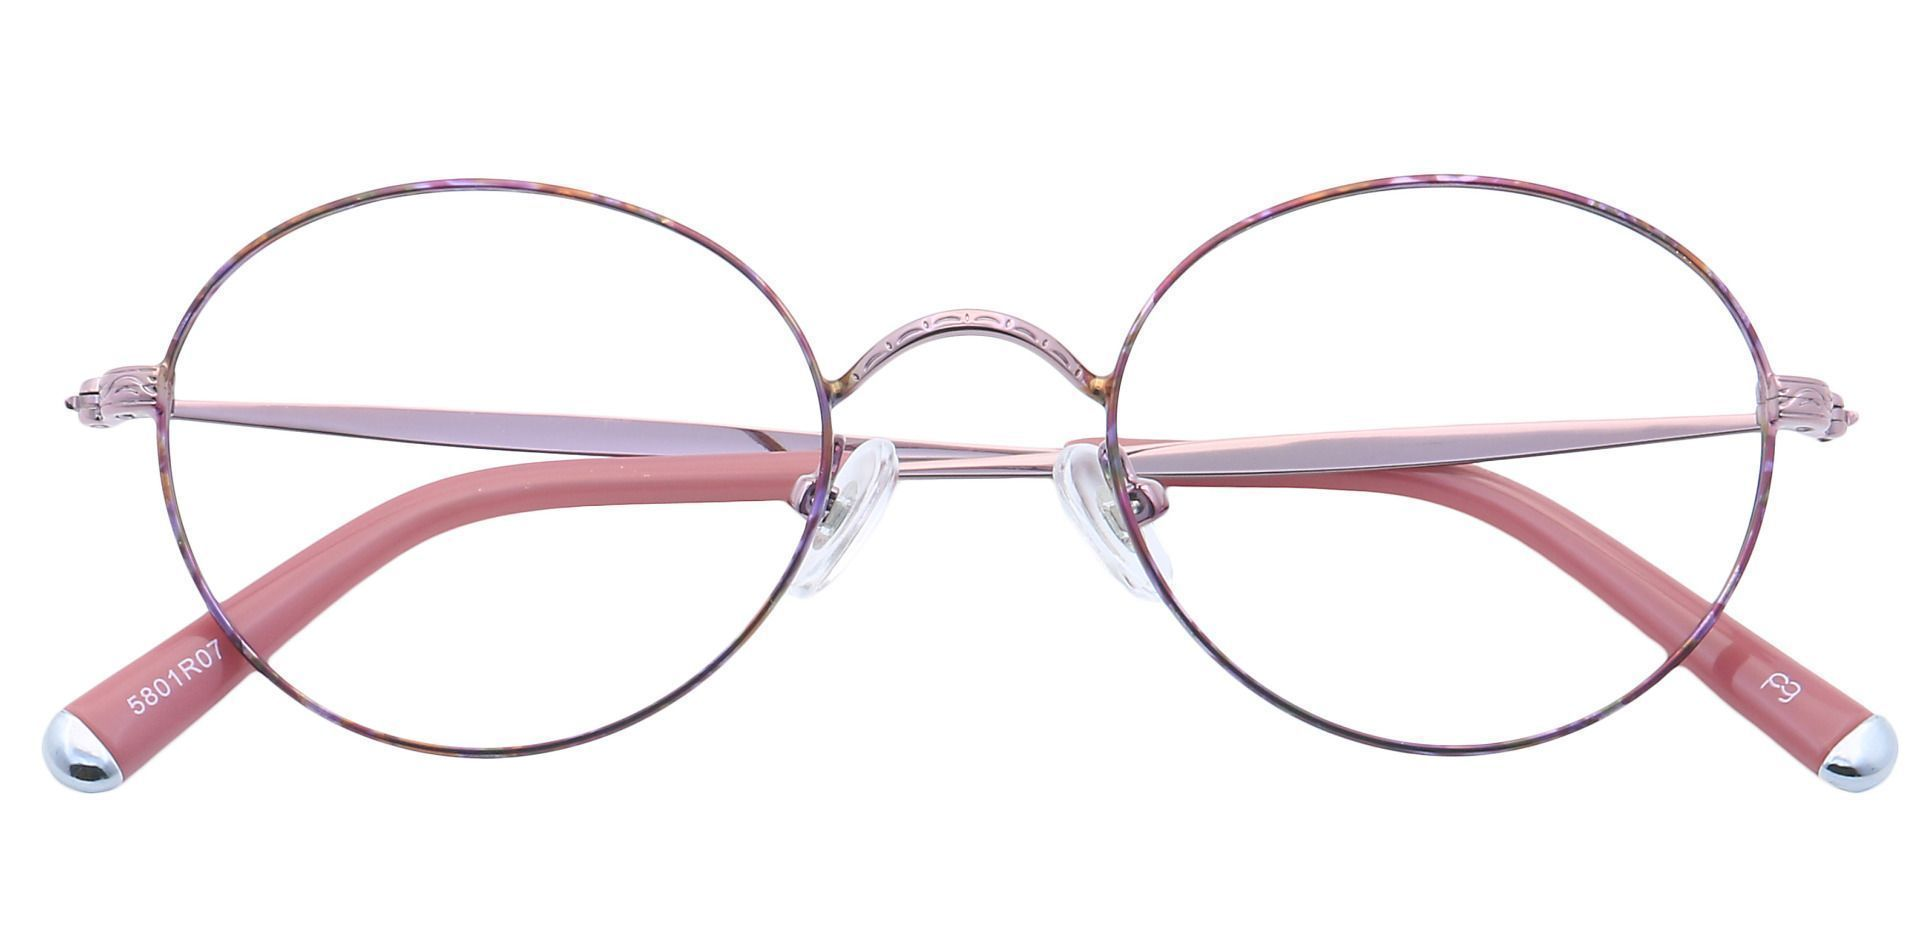 Skylar Round Prescription Glasses - Red